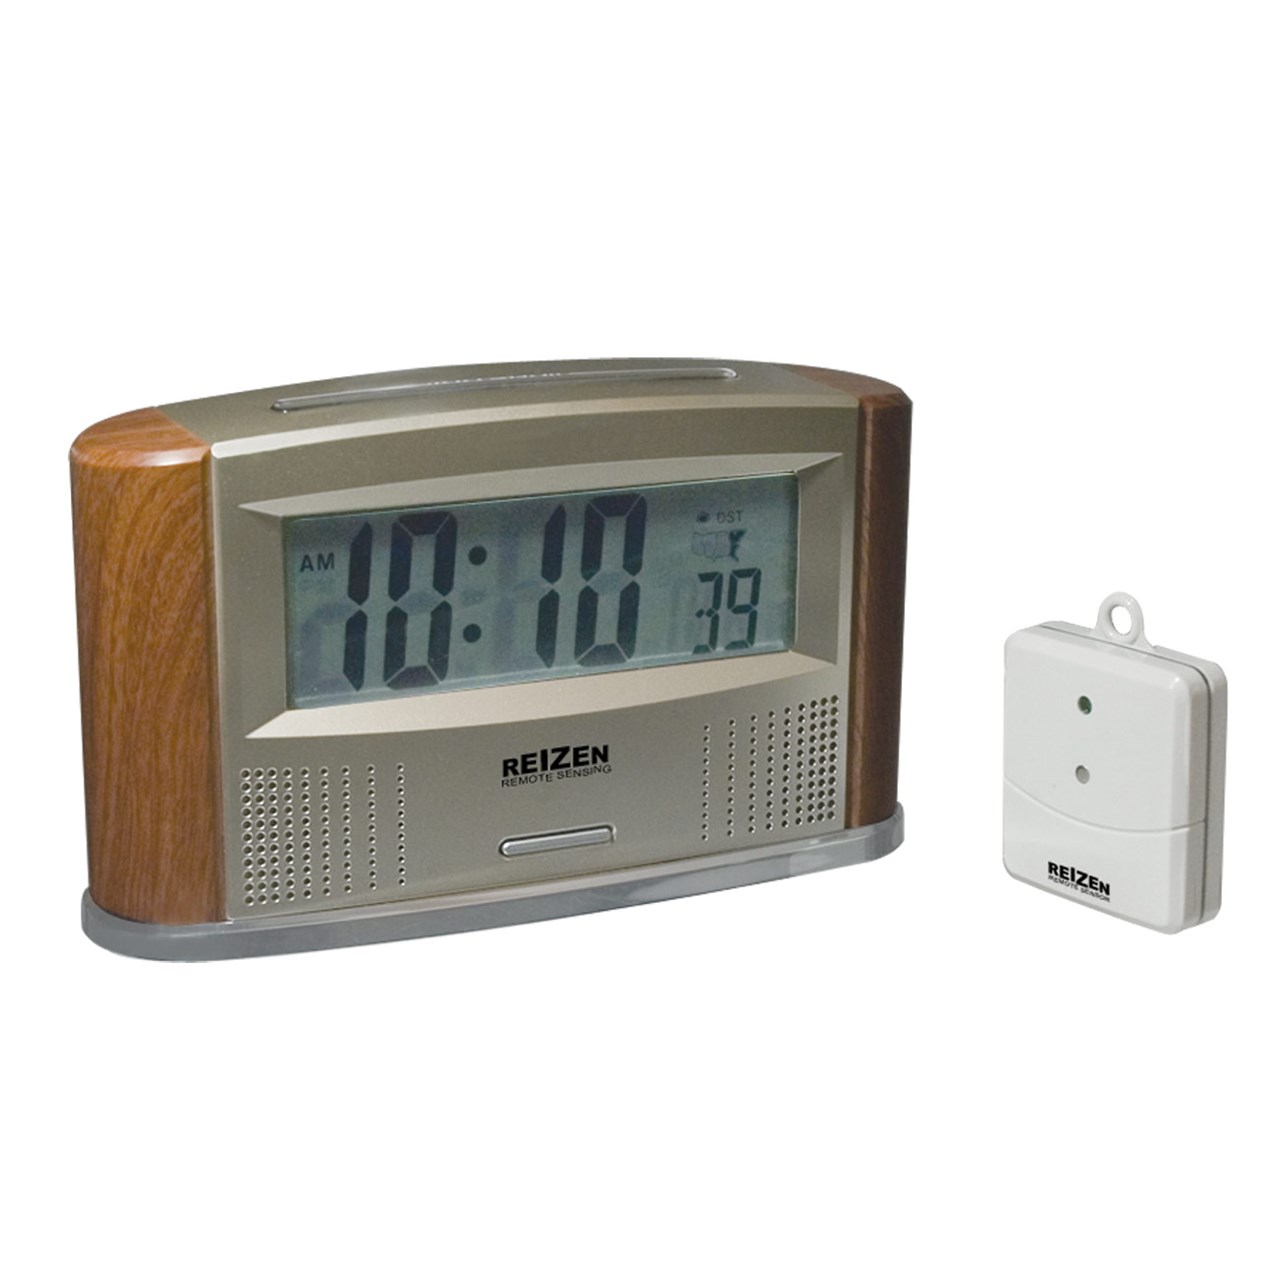 MaxiAids | Reizen Atomic Talking Clock with Indoor-Outdoor Thermometer